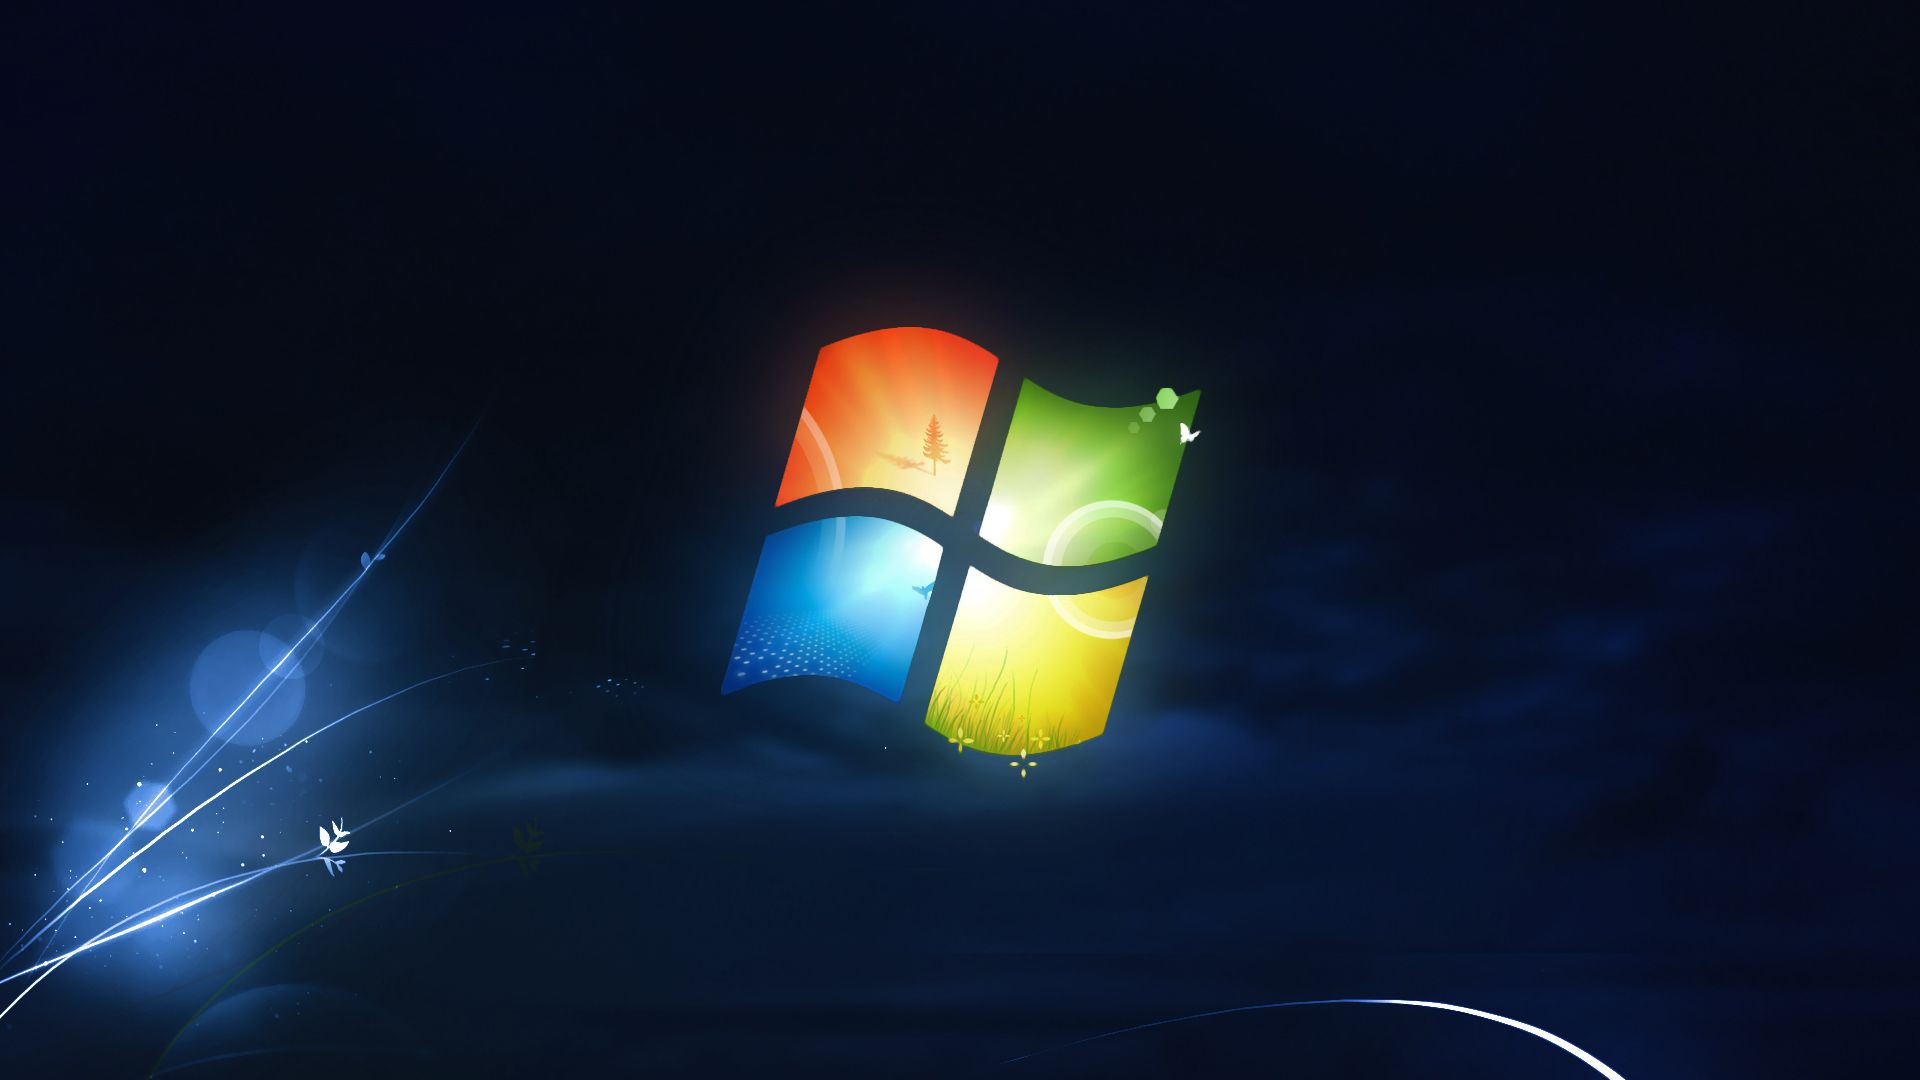 microsoft windows wallpaper official, cool microsoft windows 1920x1080